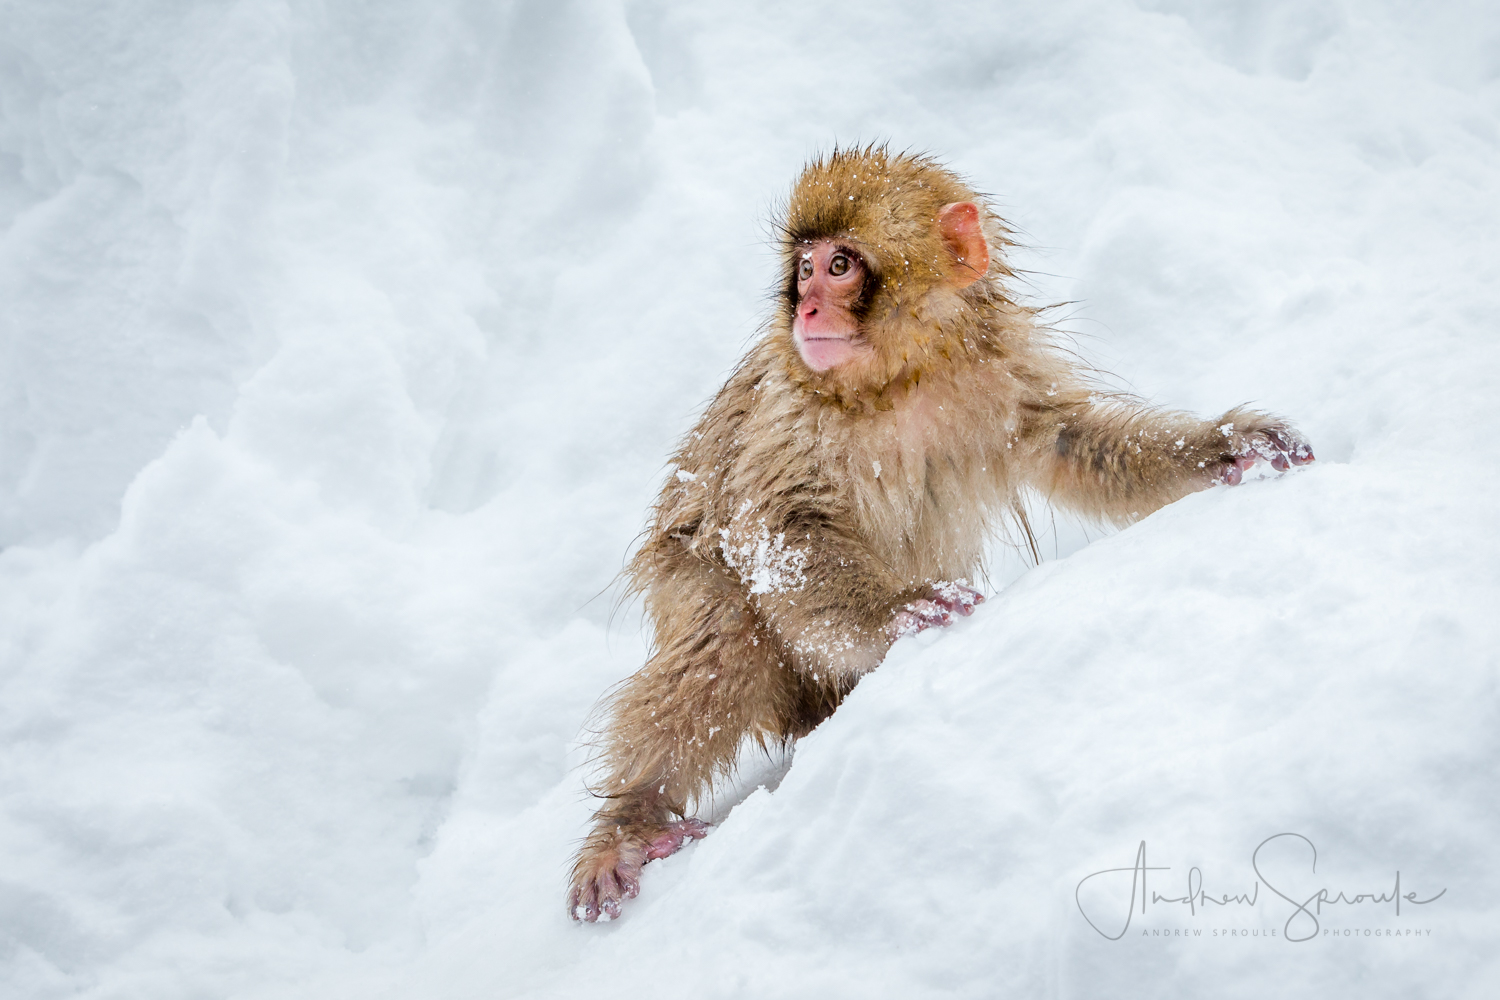 A cheeky baby Snow Monkey, Japanese Macaque (Macaca fuscata), in the snow in Jigokudani, Japan